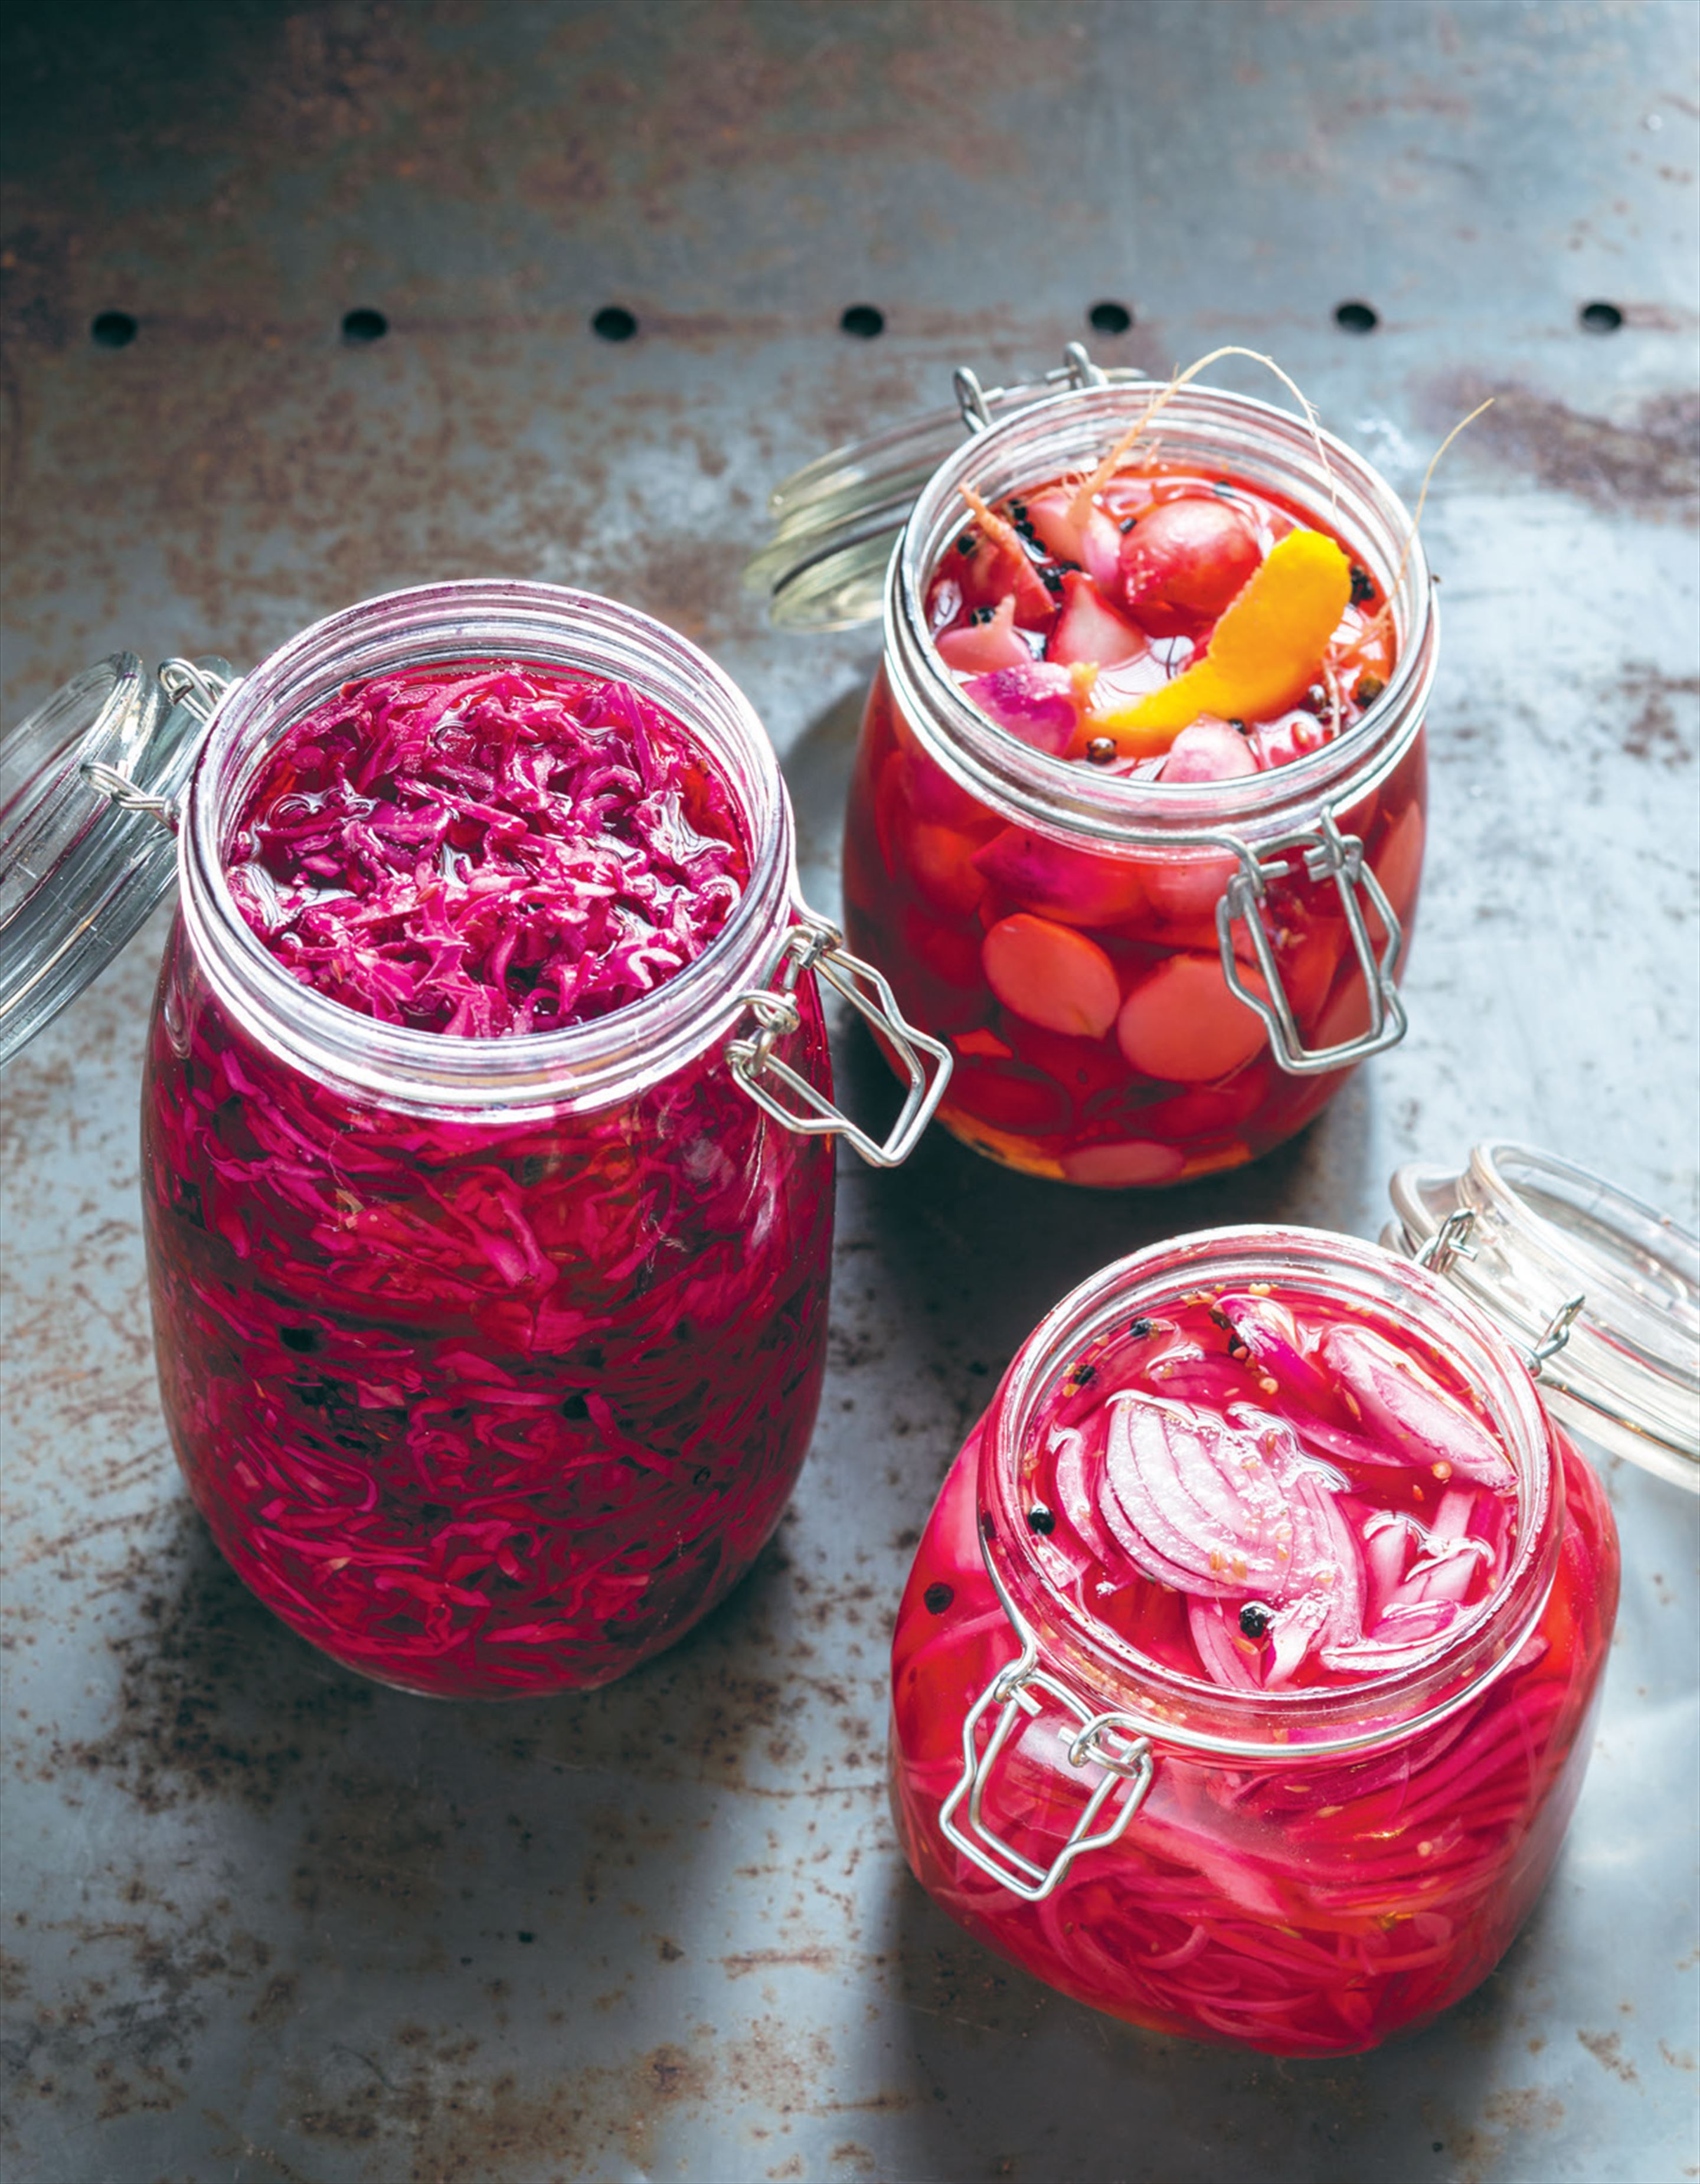 Pickled onions (& other stuff)